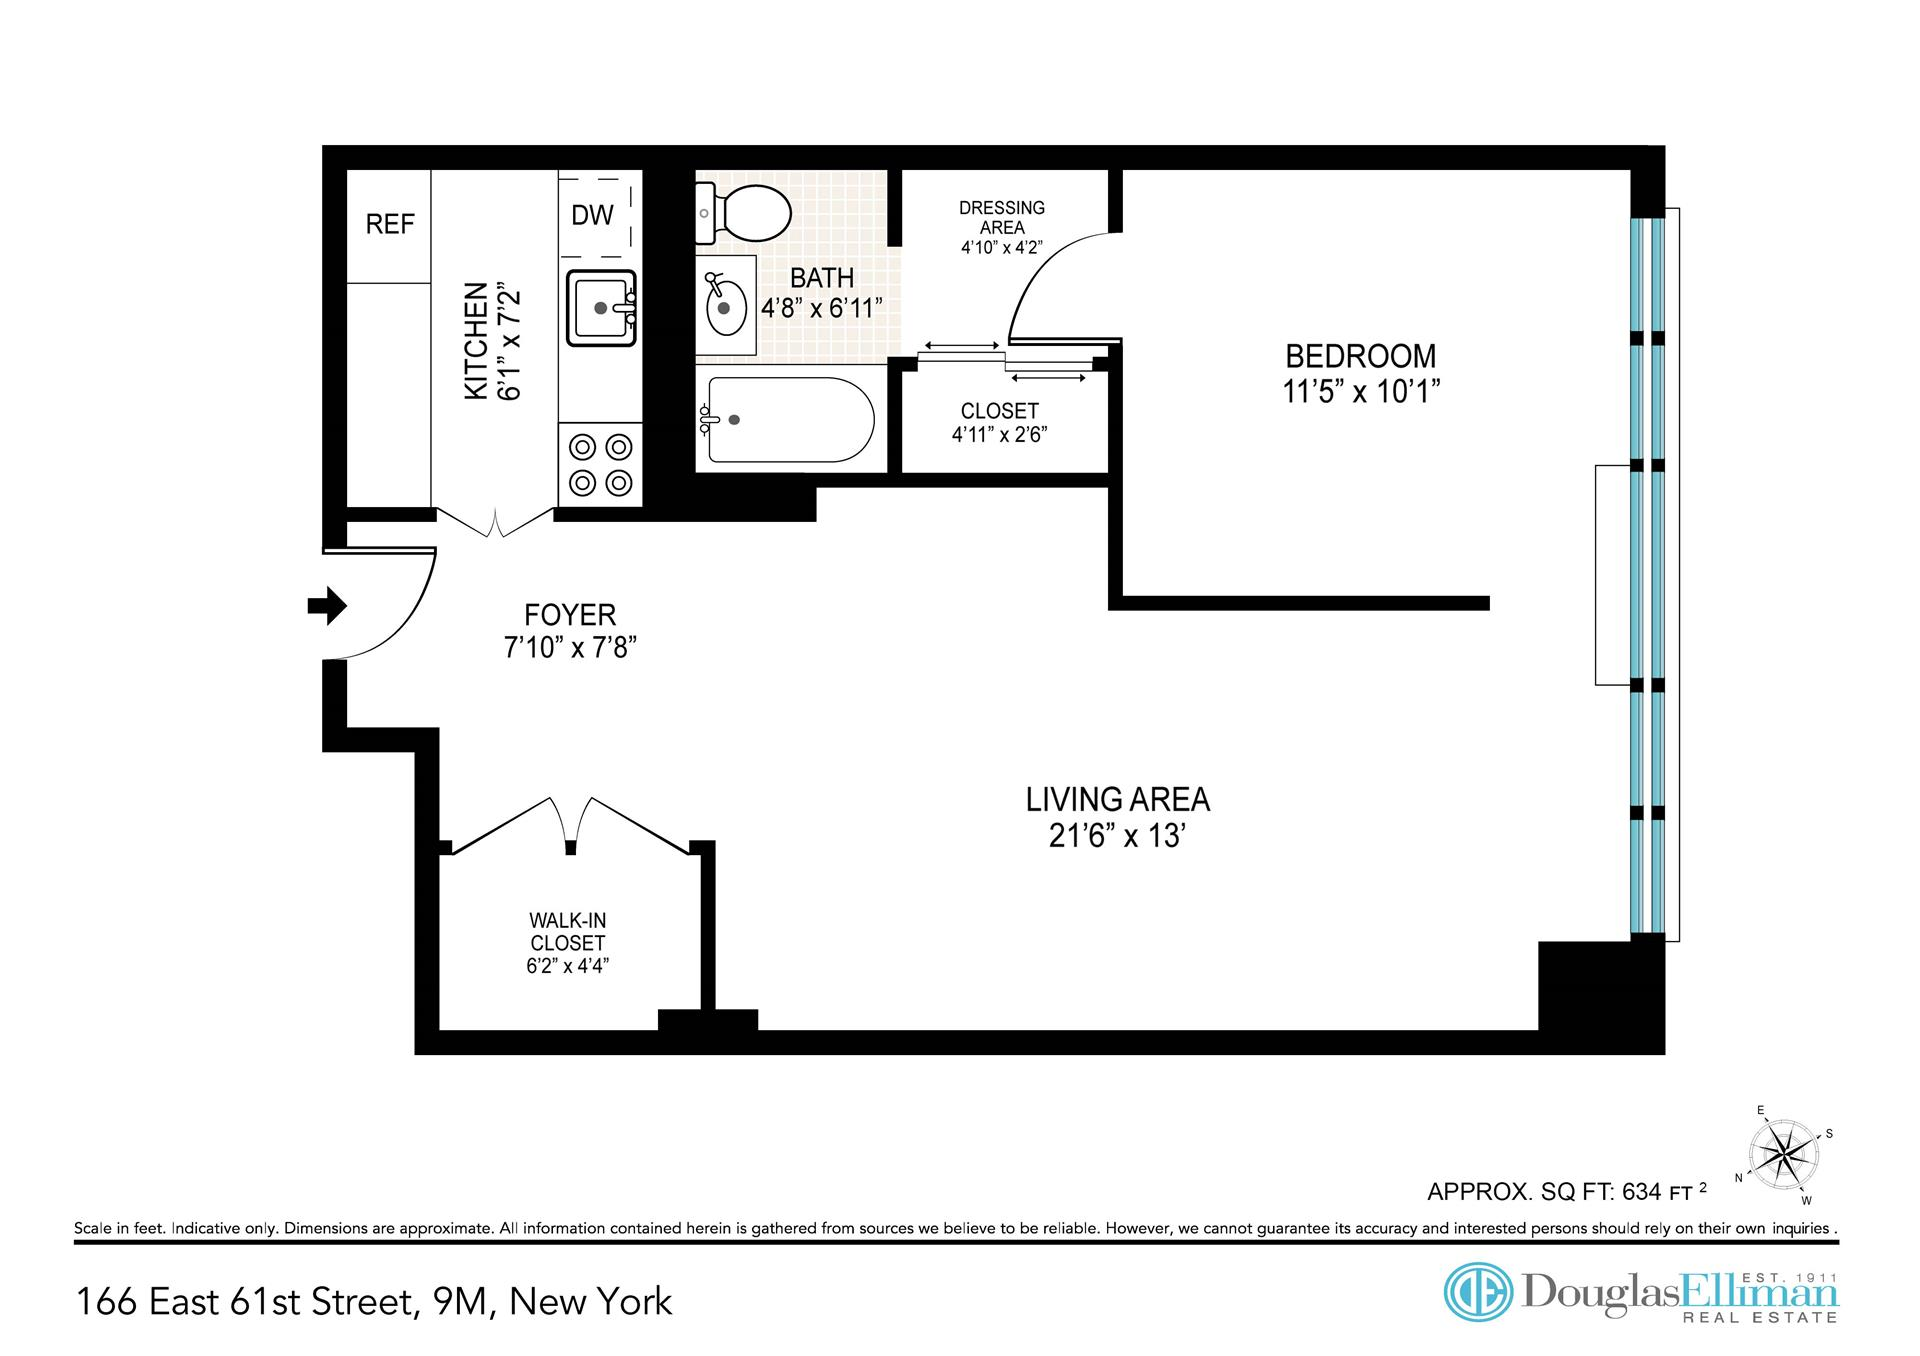 Floor plan of 166 EAST 61 ST CORP, 166 East 61st St, 9M - Upper East Side, New York